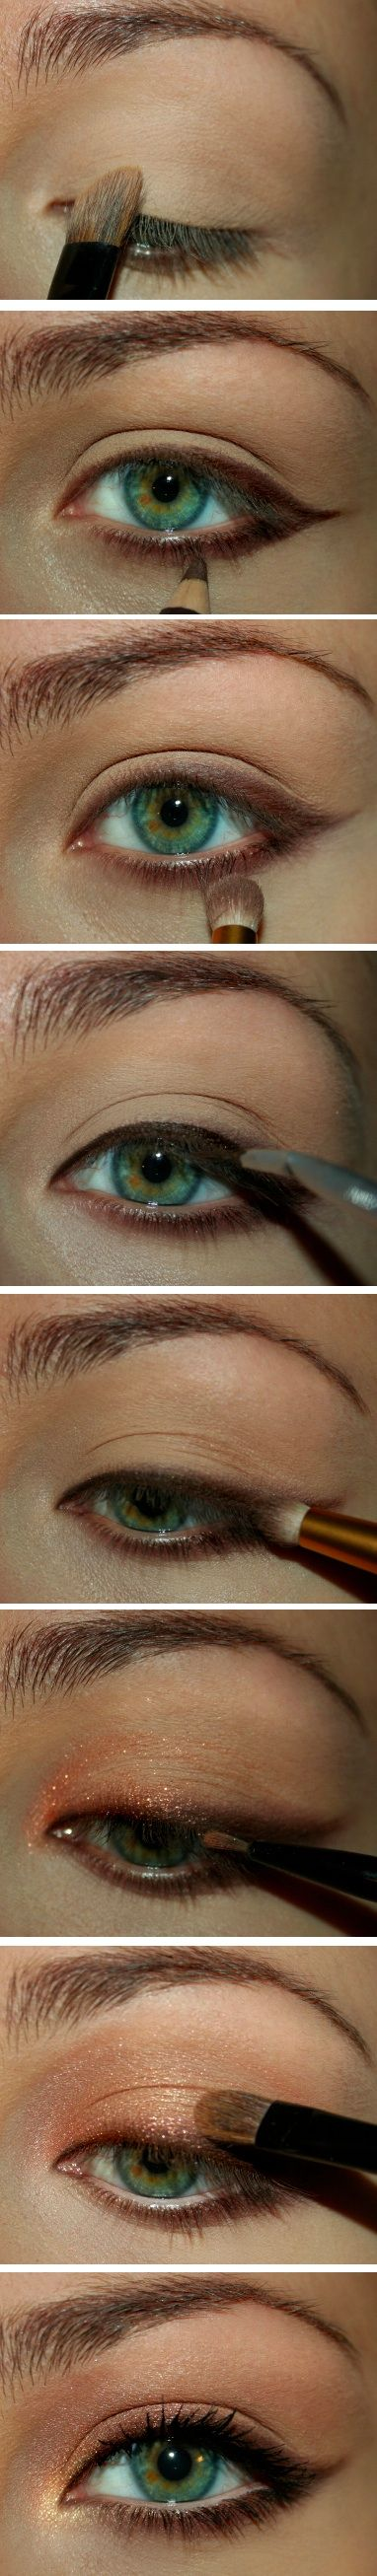 From day to night cat eye look with brown and gold combo...